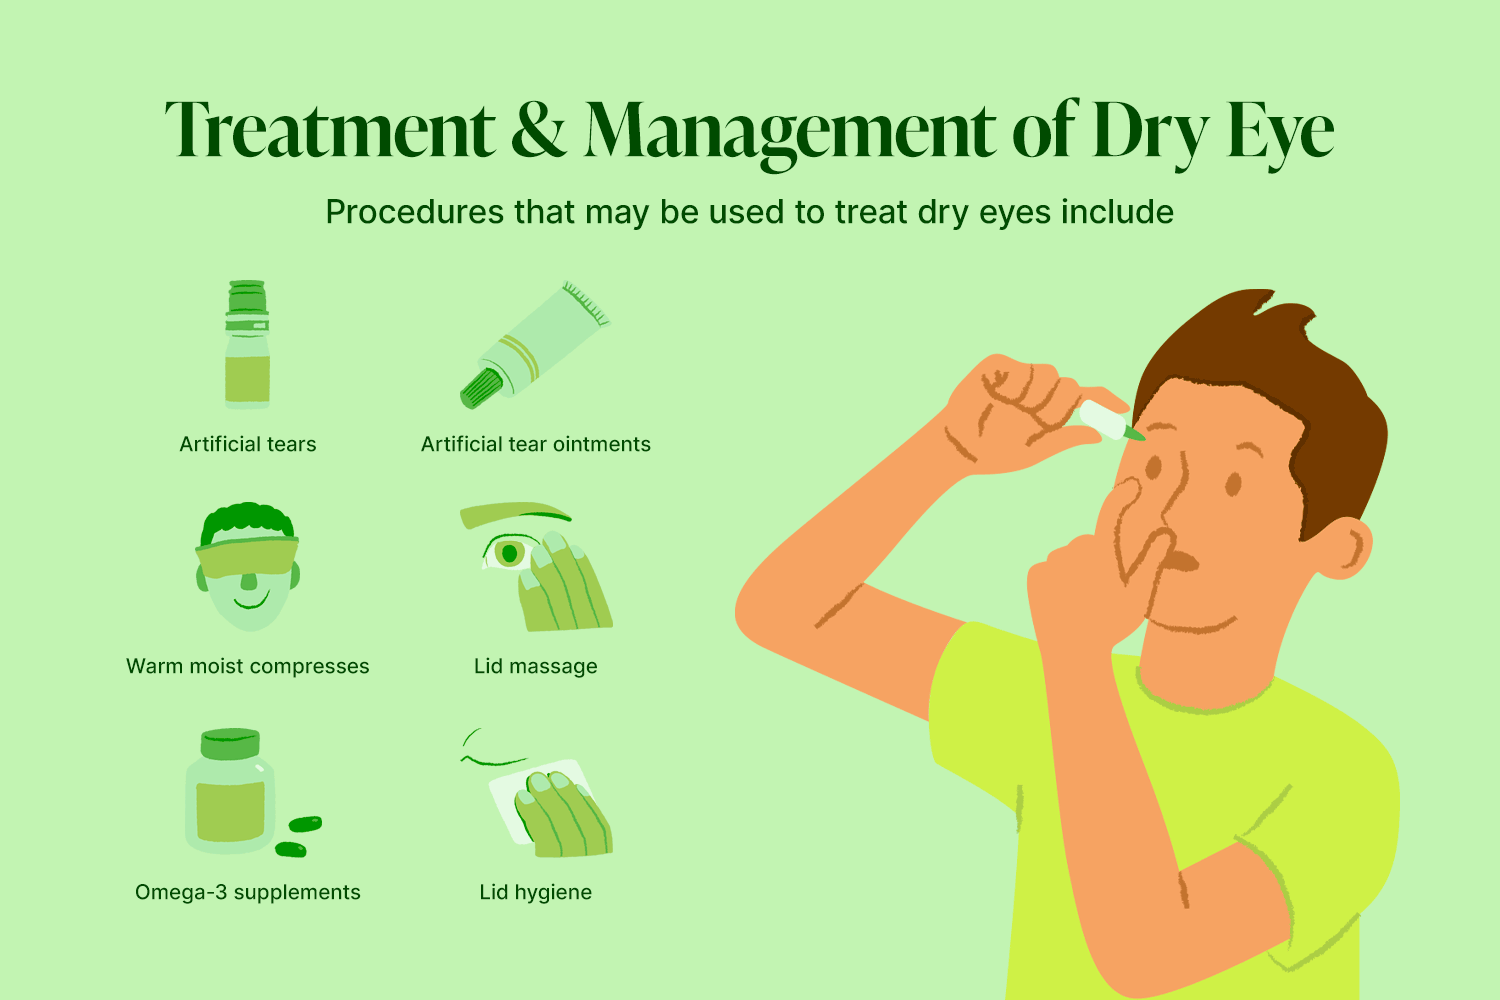 Treatment and Management of Dry Eye